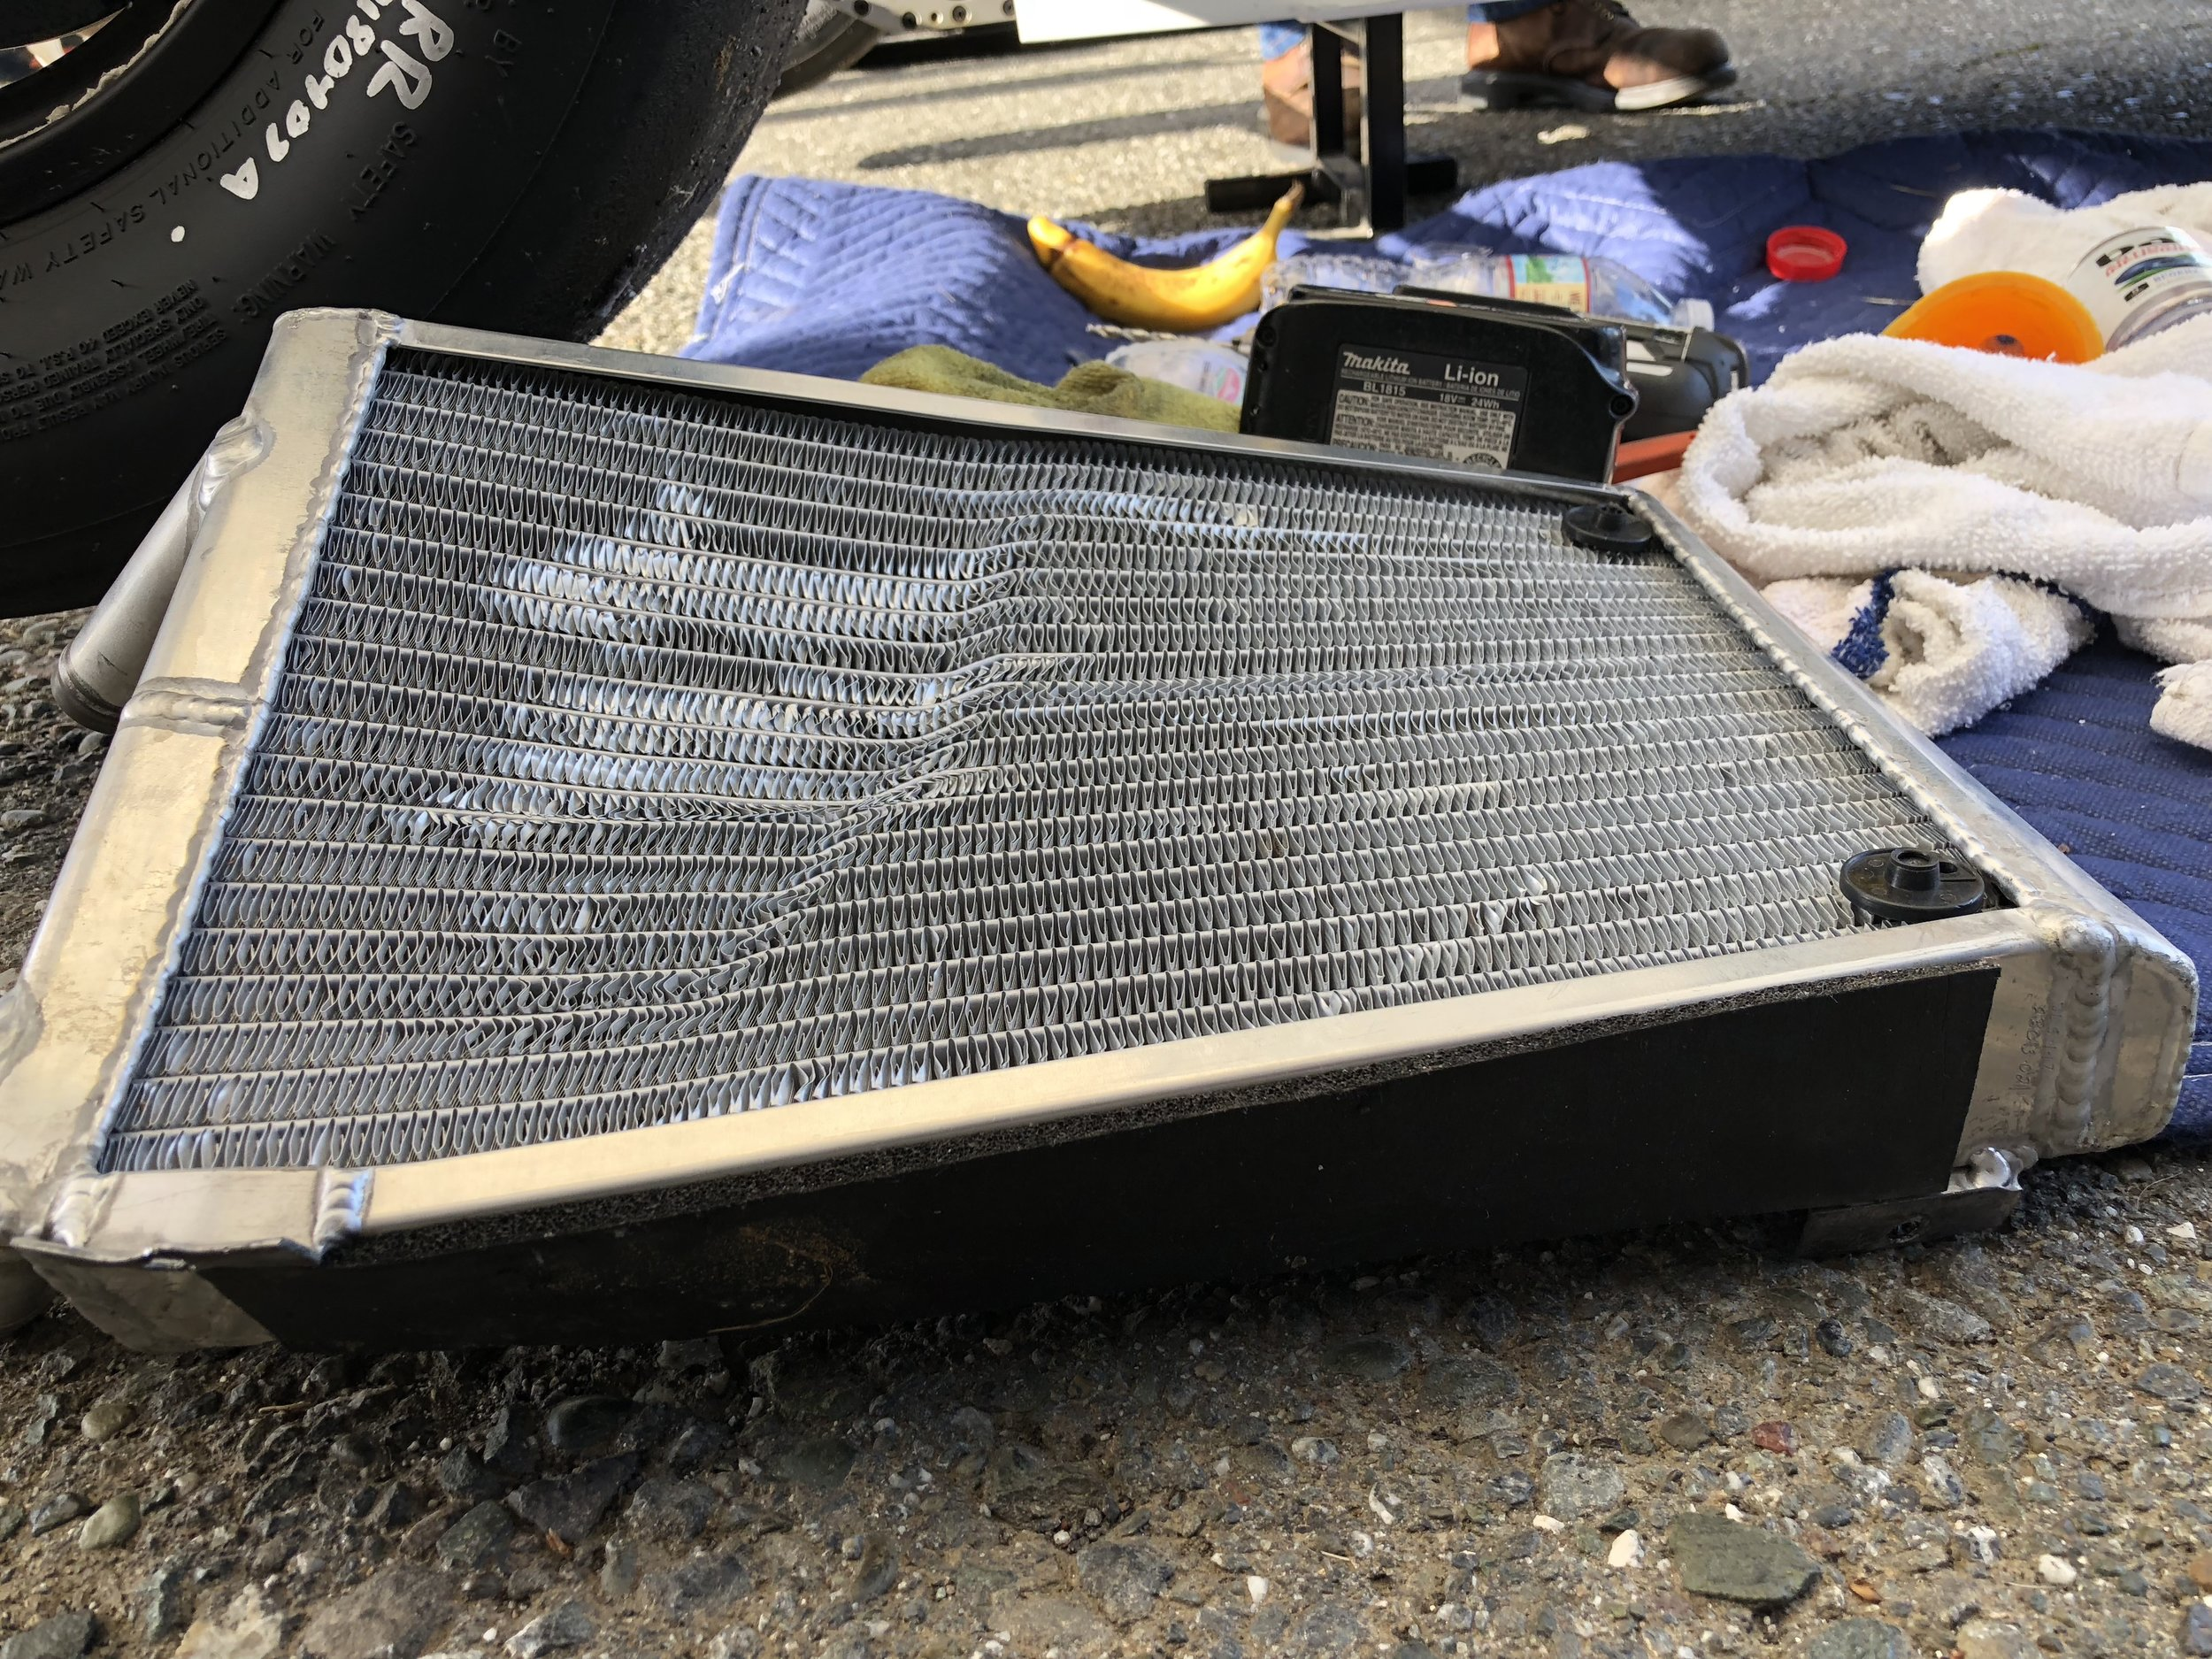 The mangled radiator from Nicky's #4 car after significant contact....luckily it still held water for the remainder of the race 1.